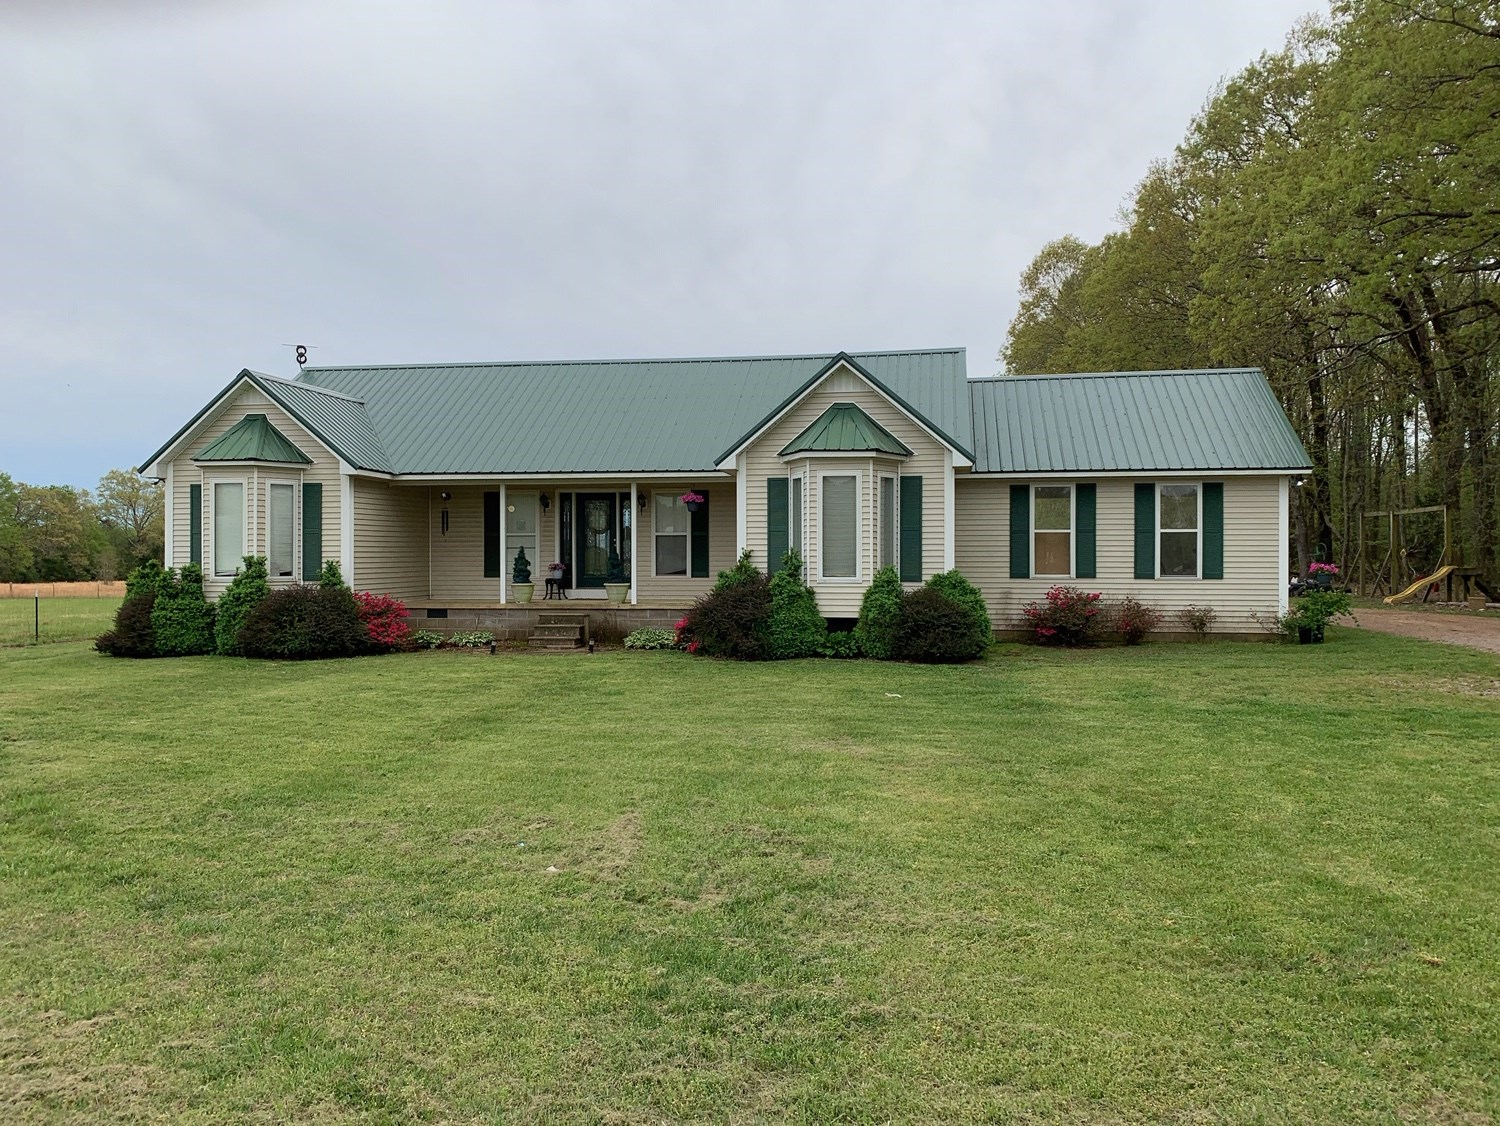 3 BEDROOM COUNTRY HOME FOR SALE IN ADAMSVILLE TN